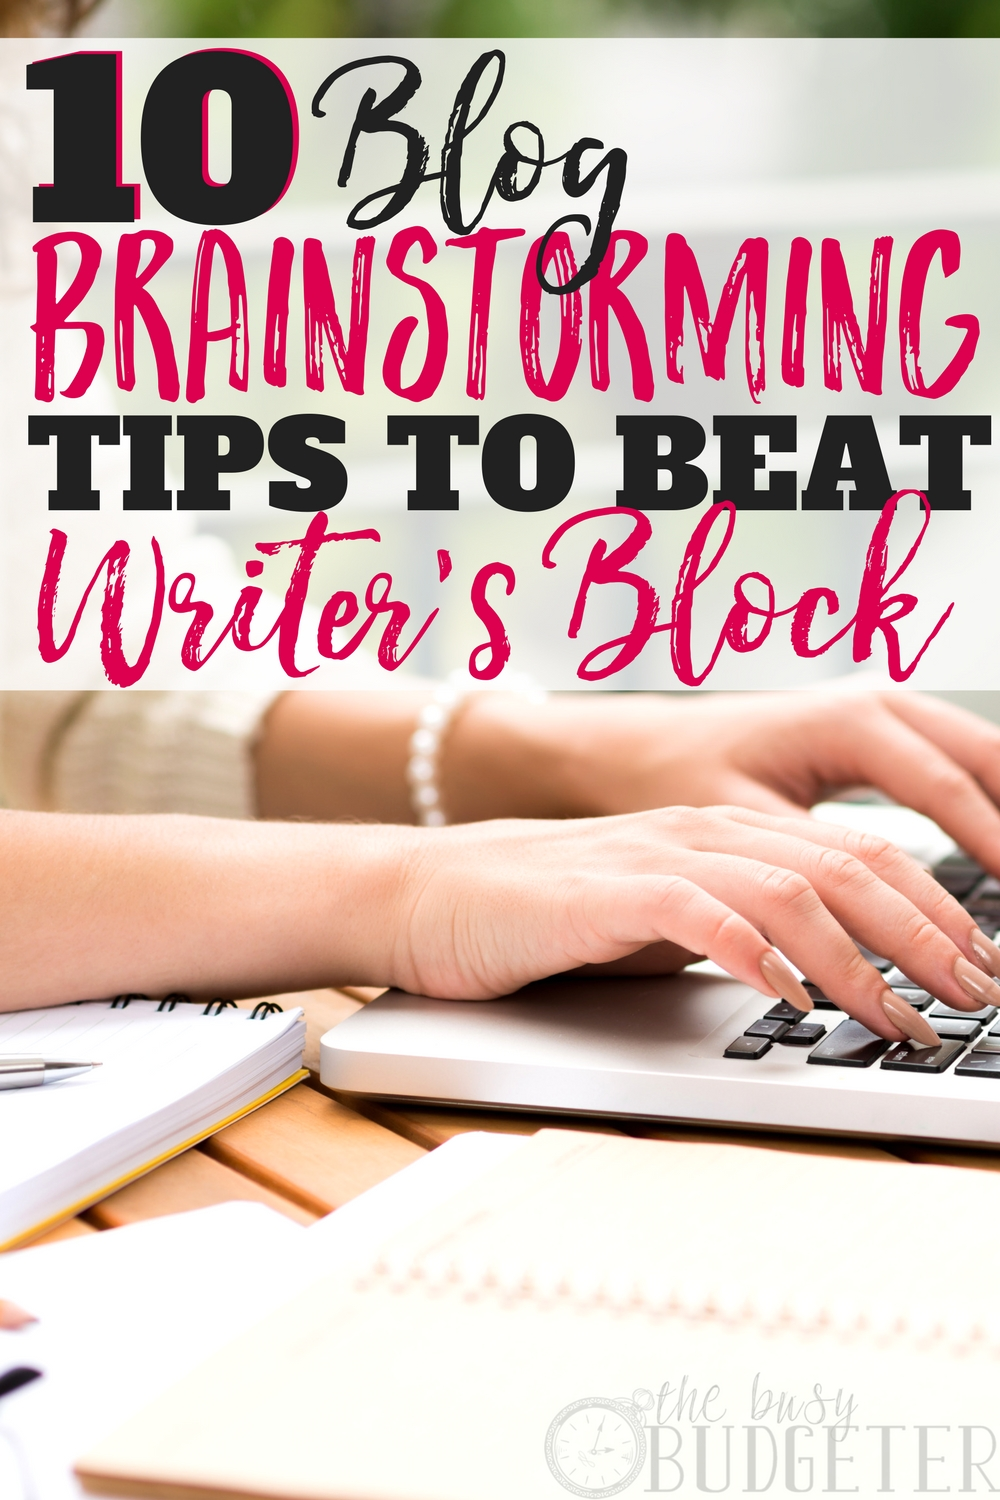 I've spent so much time trying to figure out how to beat writer's block and wondering how people pump out an entire year's worth of content. This article is such a game changer--especially that tip about reverse mind-mapping.. wow!! After learning about these blogging tips I have my editorial calendar totally SET for the entire year!!